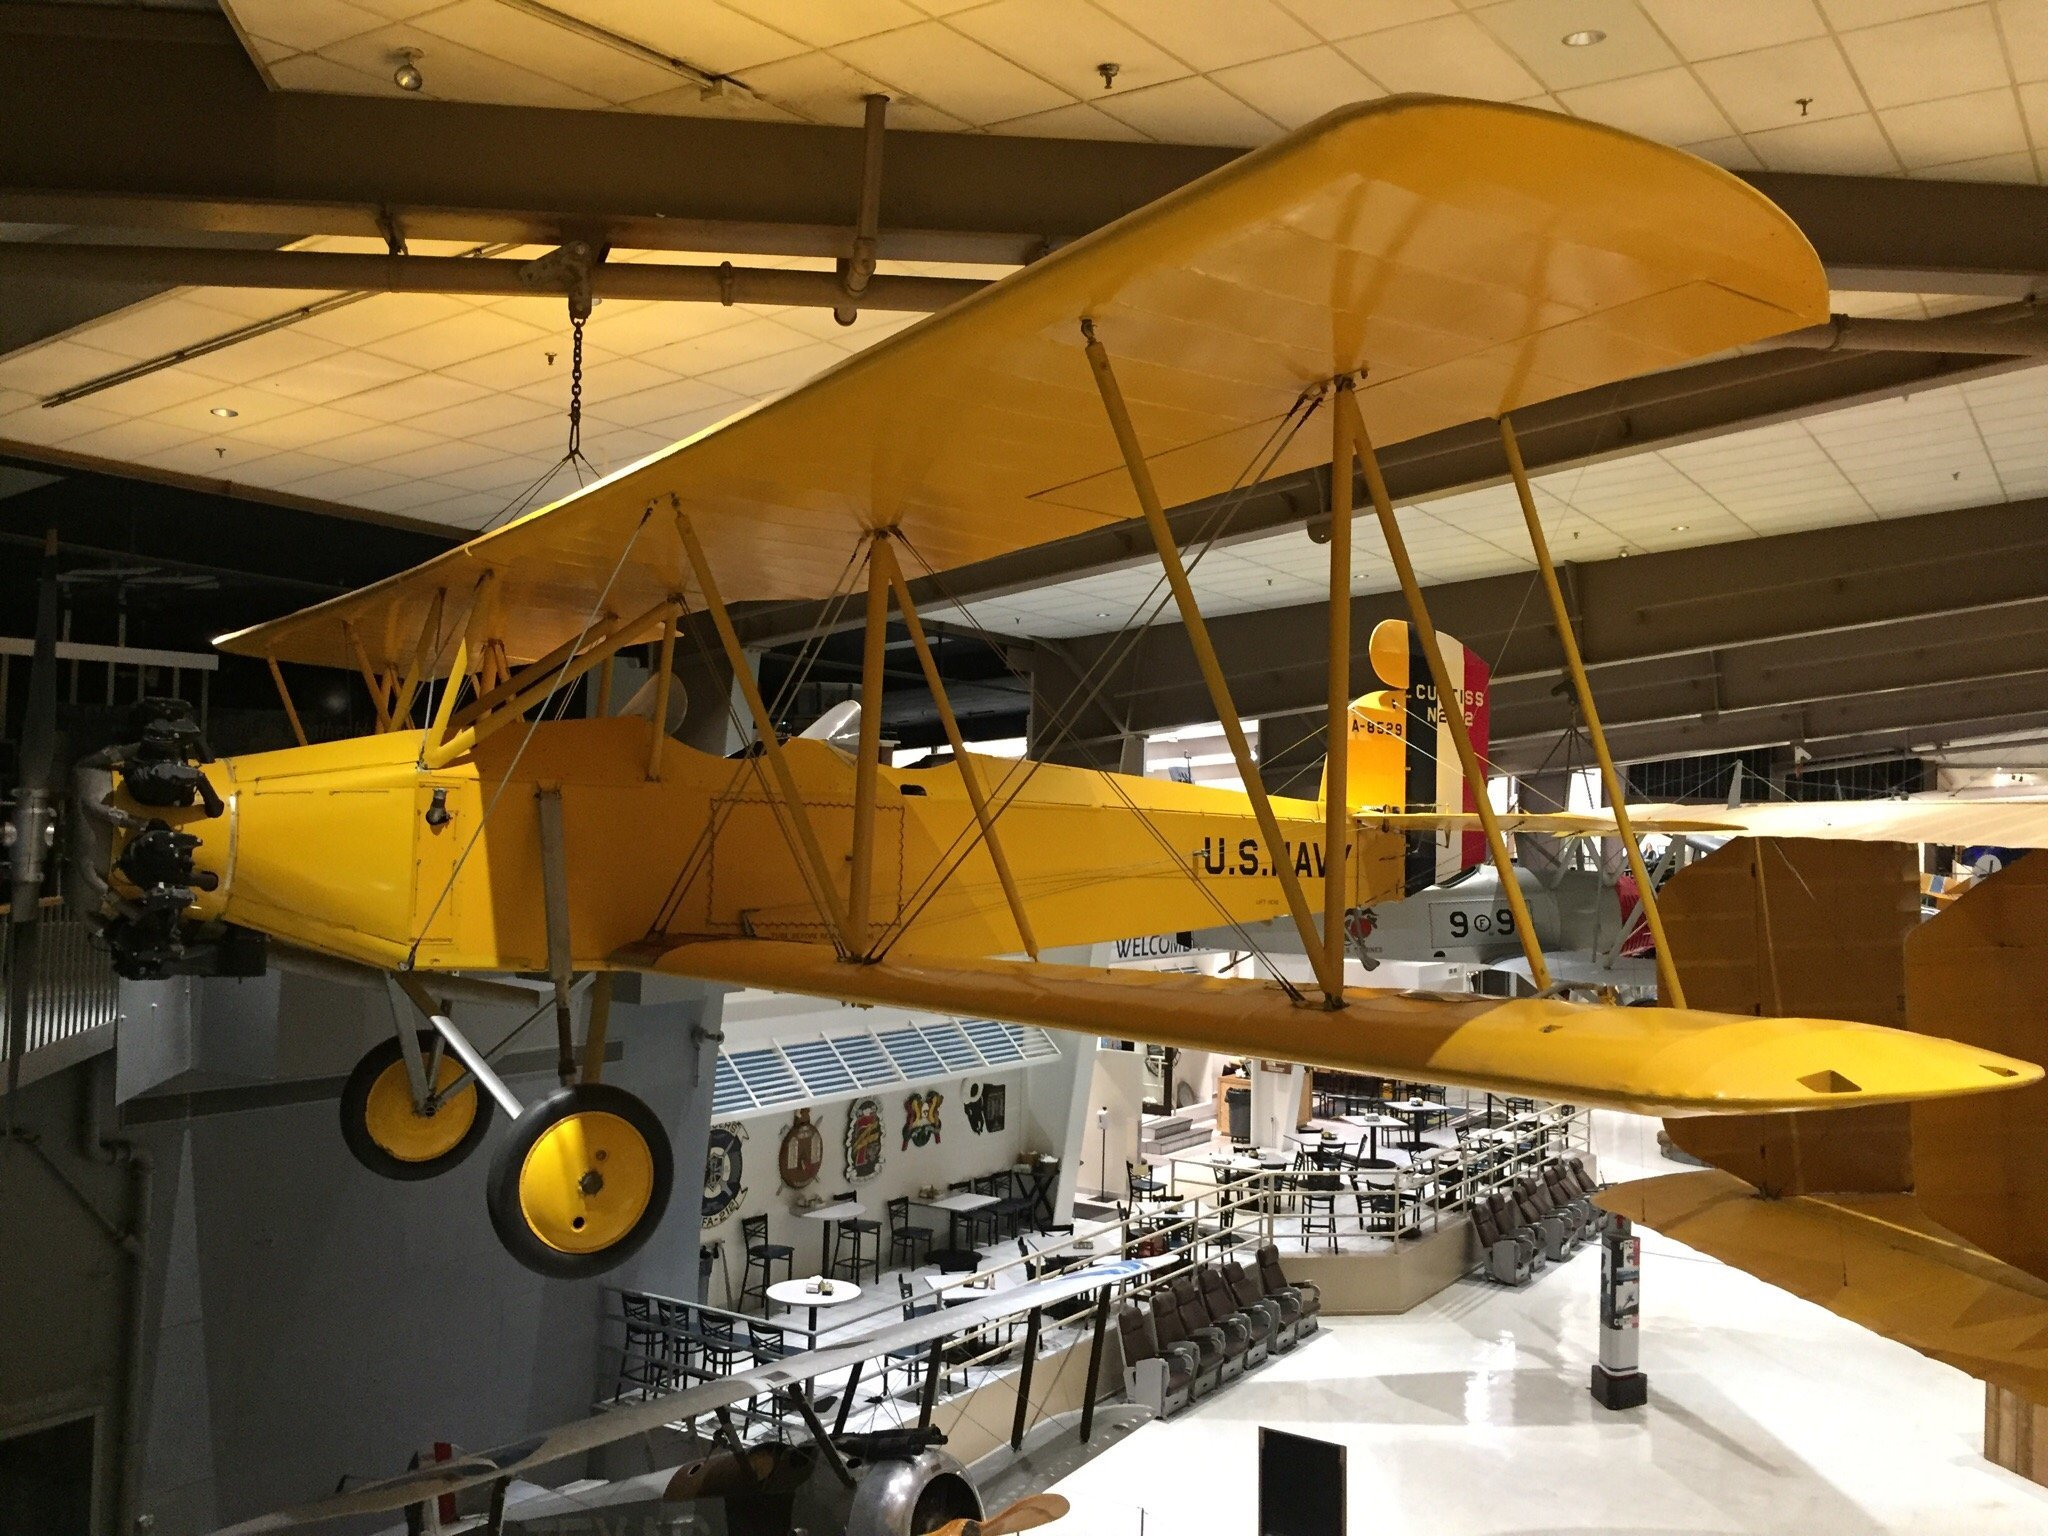 National Navel Aviation Museum